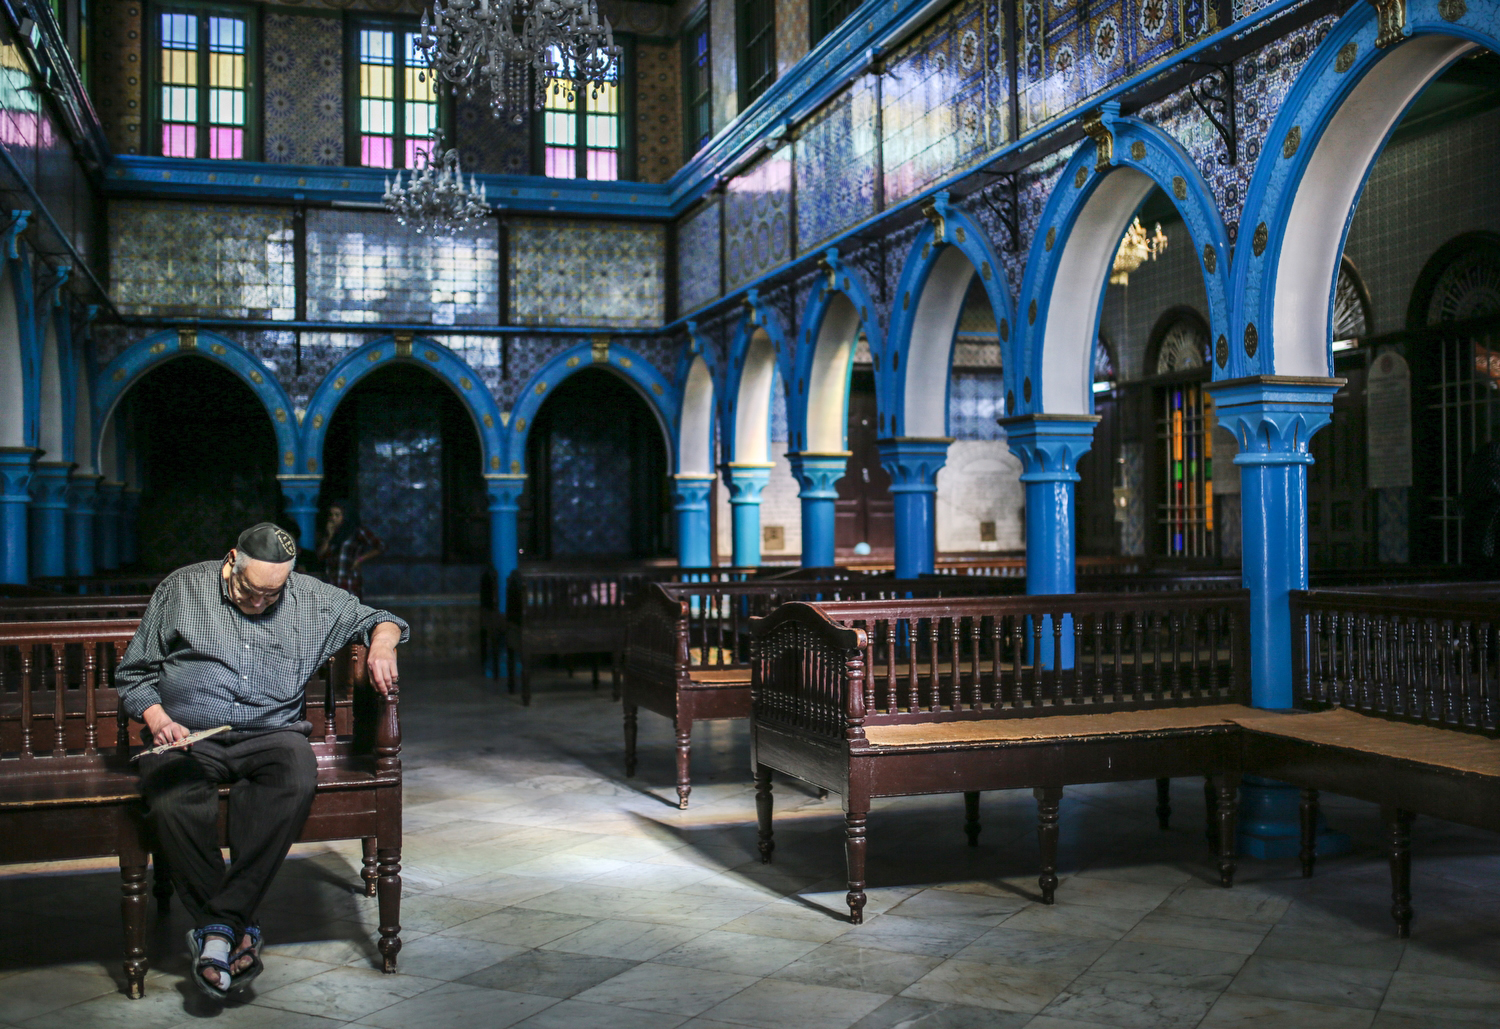 A Jewish man prays in a synagogue on the island of Djerba in Tunisia—one of a handful of Jews remaining in the Arab world after 800,000 were forcibly exiled or fled after their citizenship was revoked by the Arab League in 1946. No aid, compensation or other redress has ever been granted these refugees.